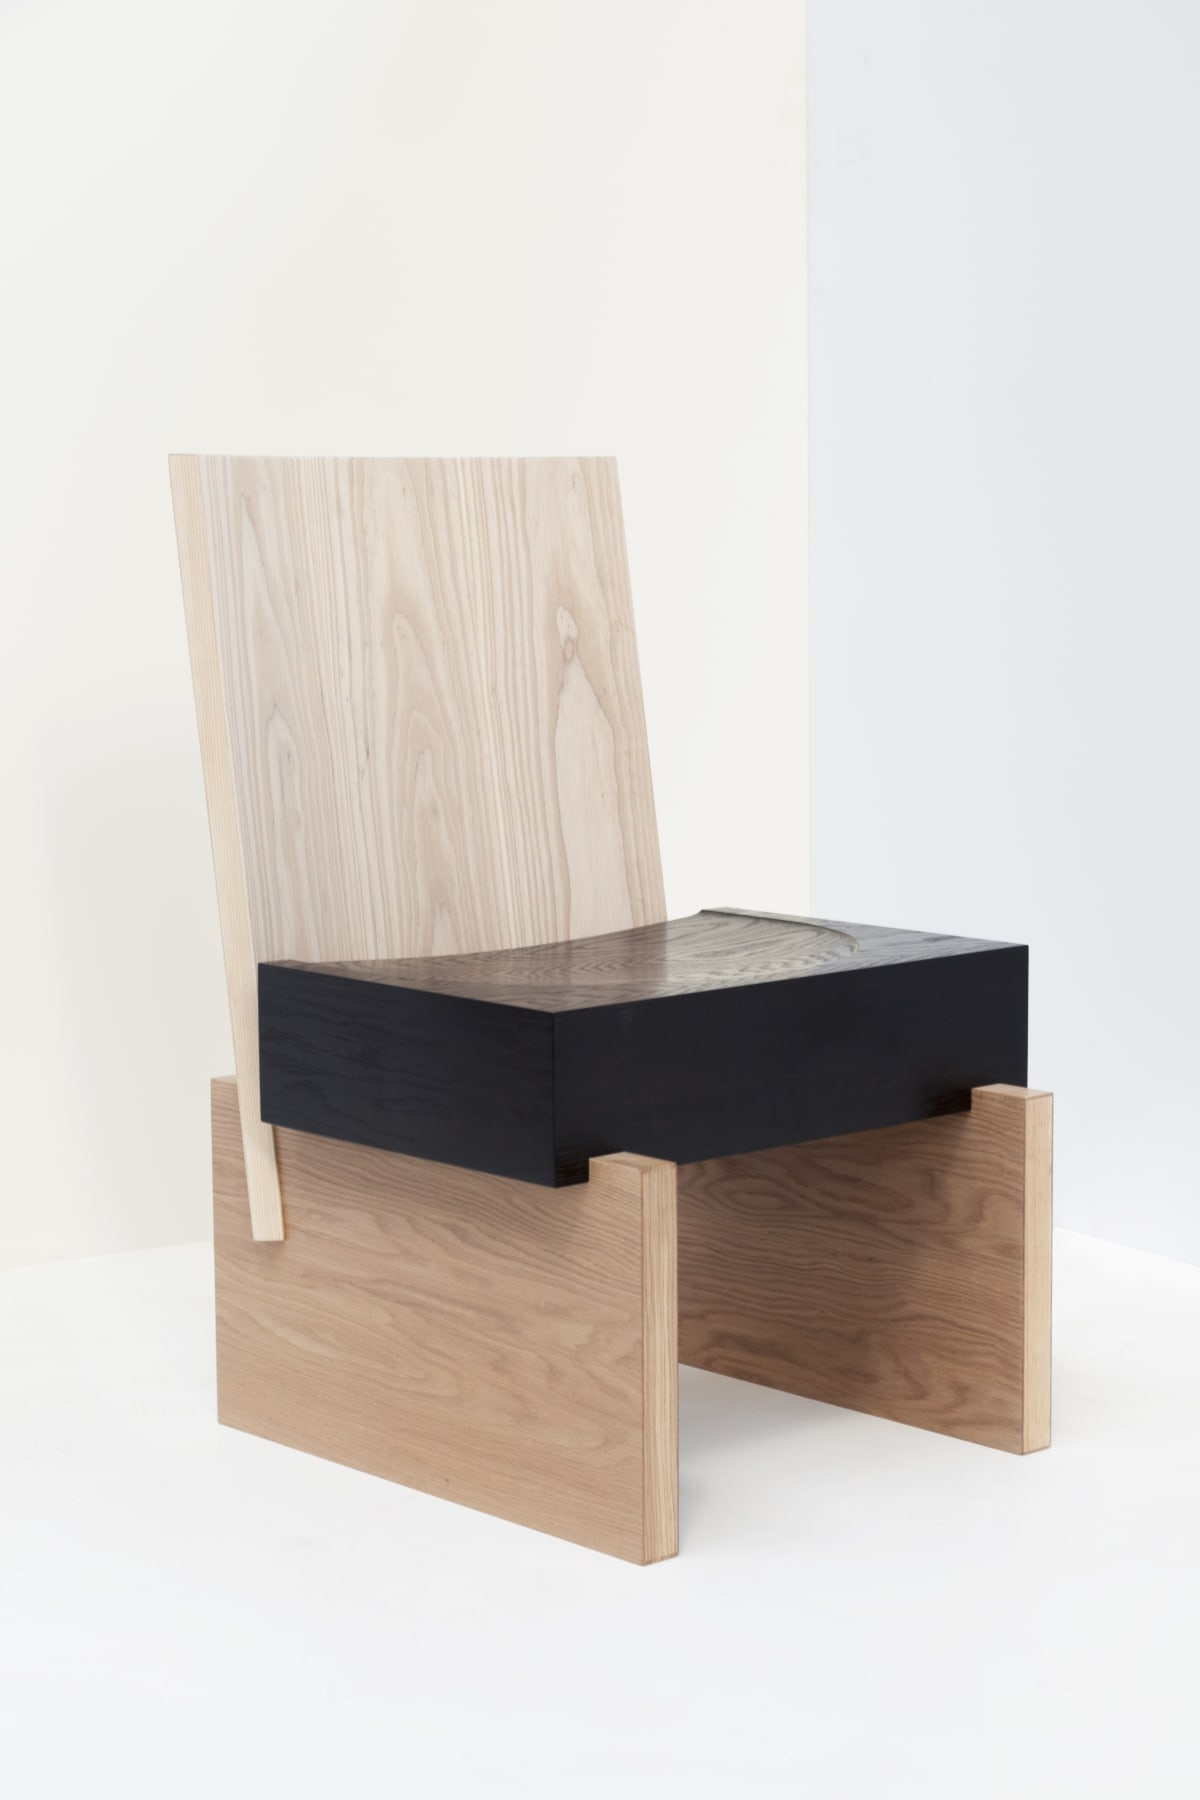 Jonathan West Heavy Chair American ash, American oak, ebonised oak 86.5 x 56 x 58 cm